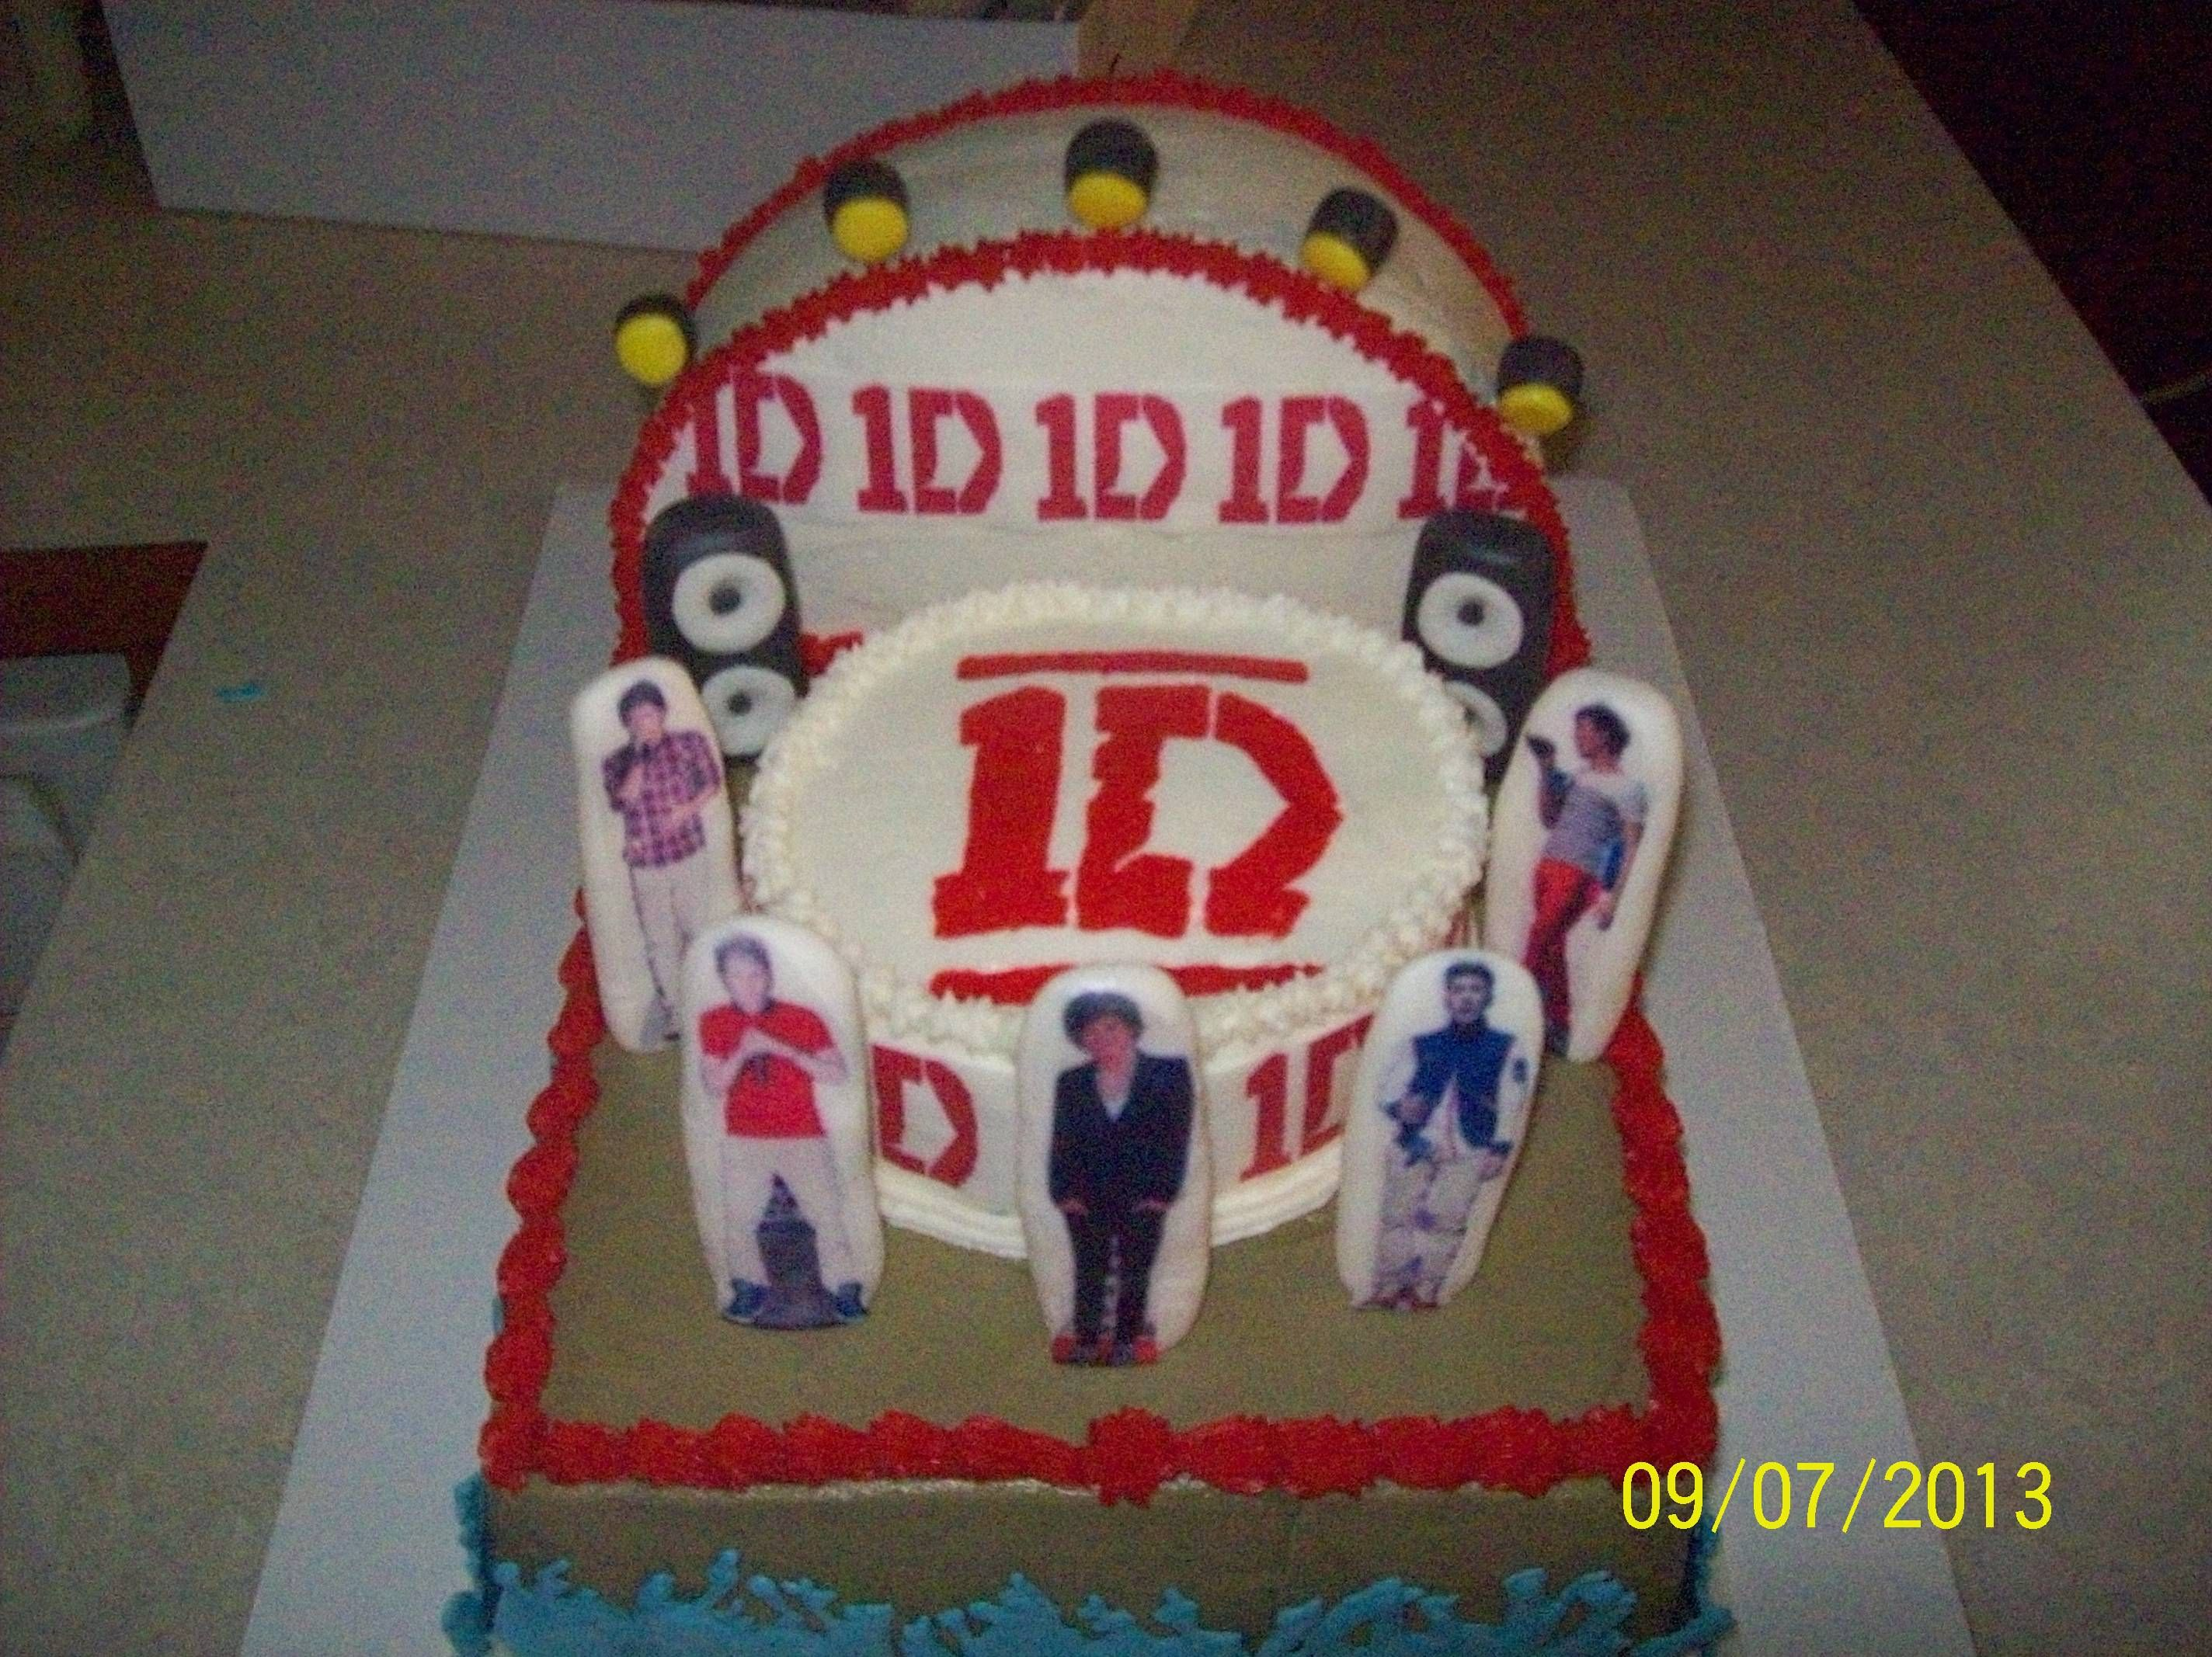 Jayme Sue's One Direction on stage cake this is my mom's friend she makes amazing cakes I'm trying to spread her around